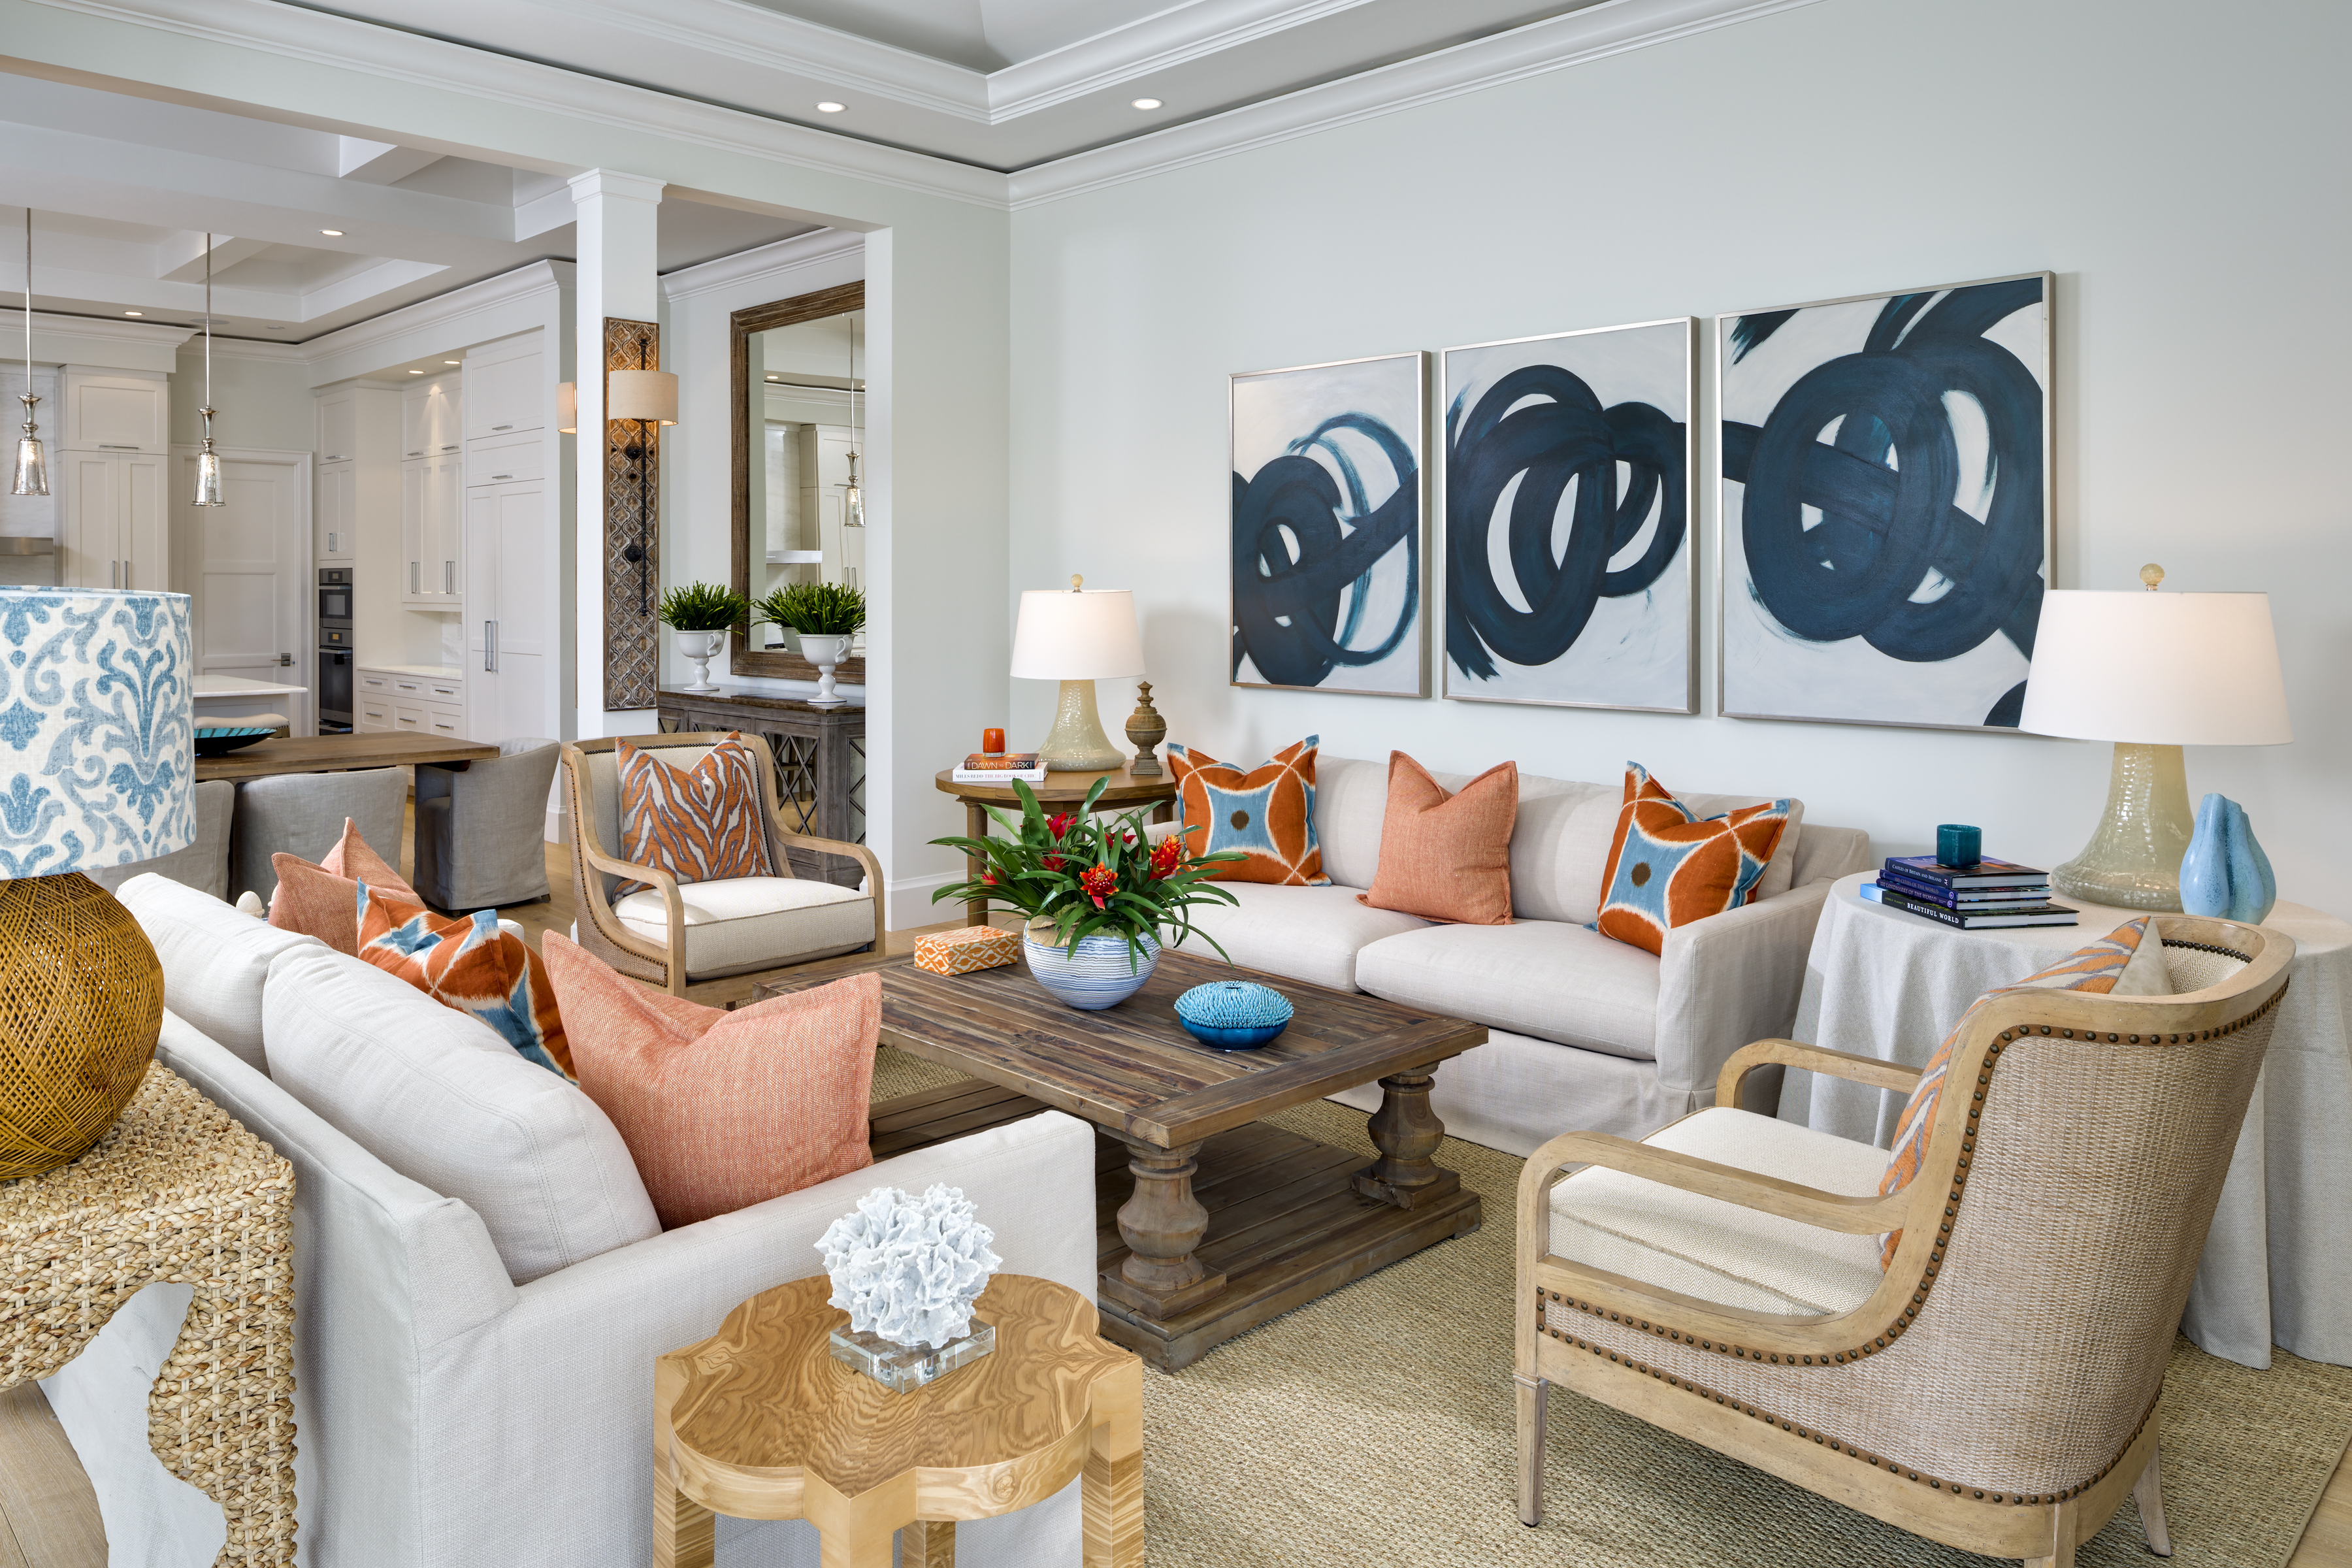 Jeffrey Fisher Home Luxury Interior Design Imagined Home Decor Living Room